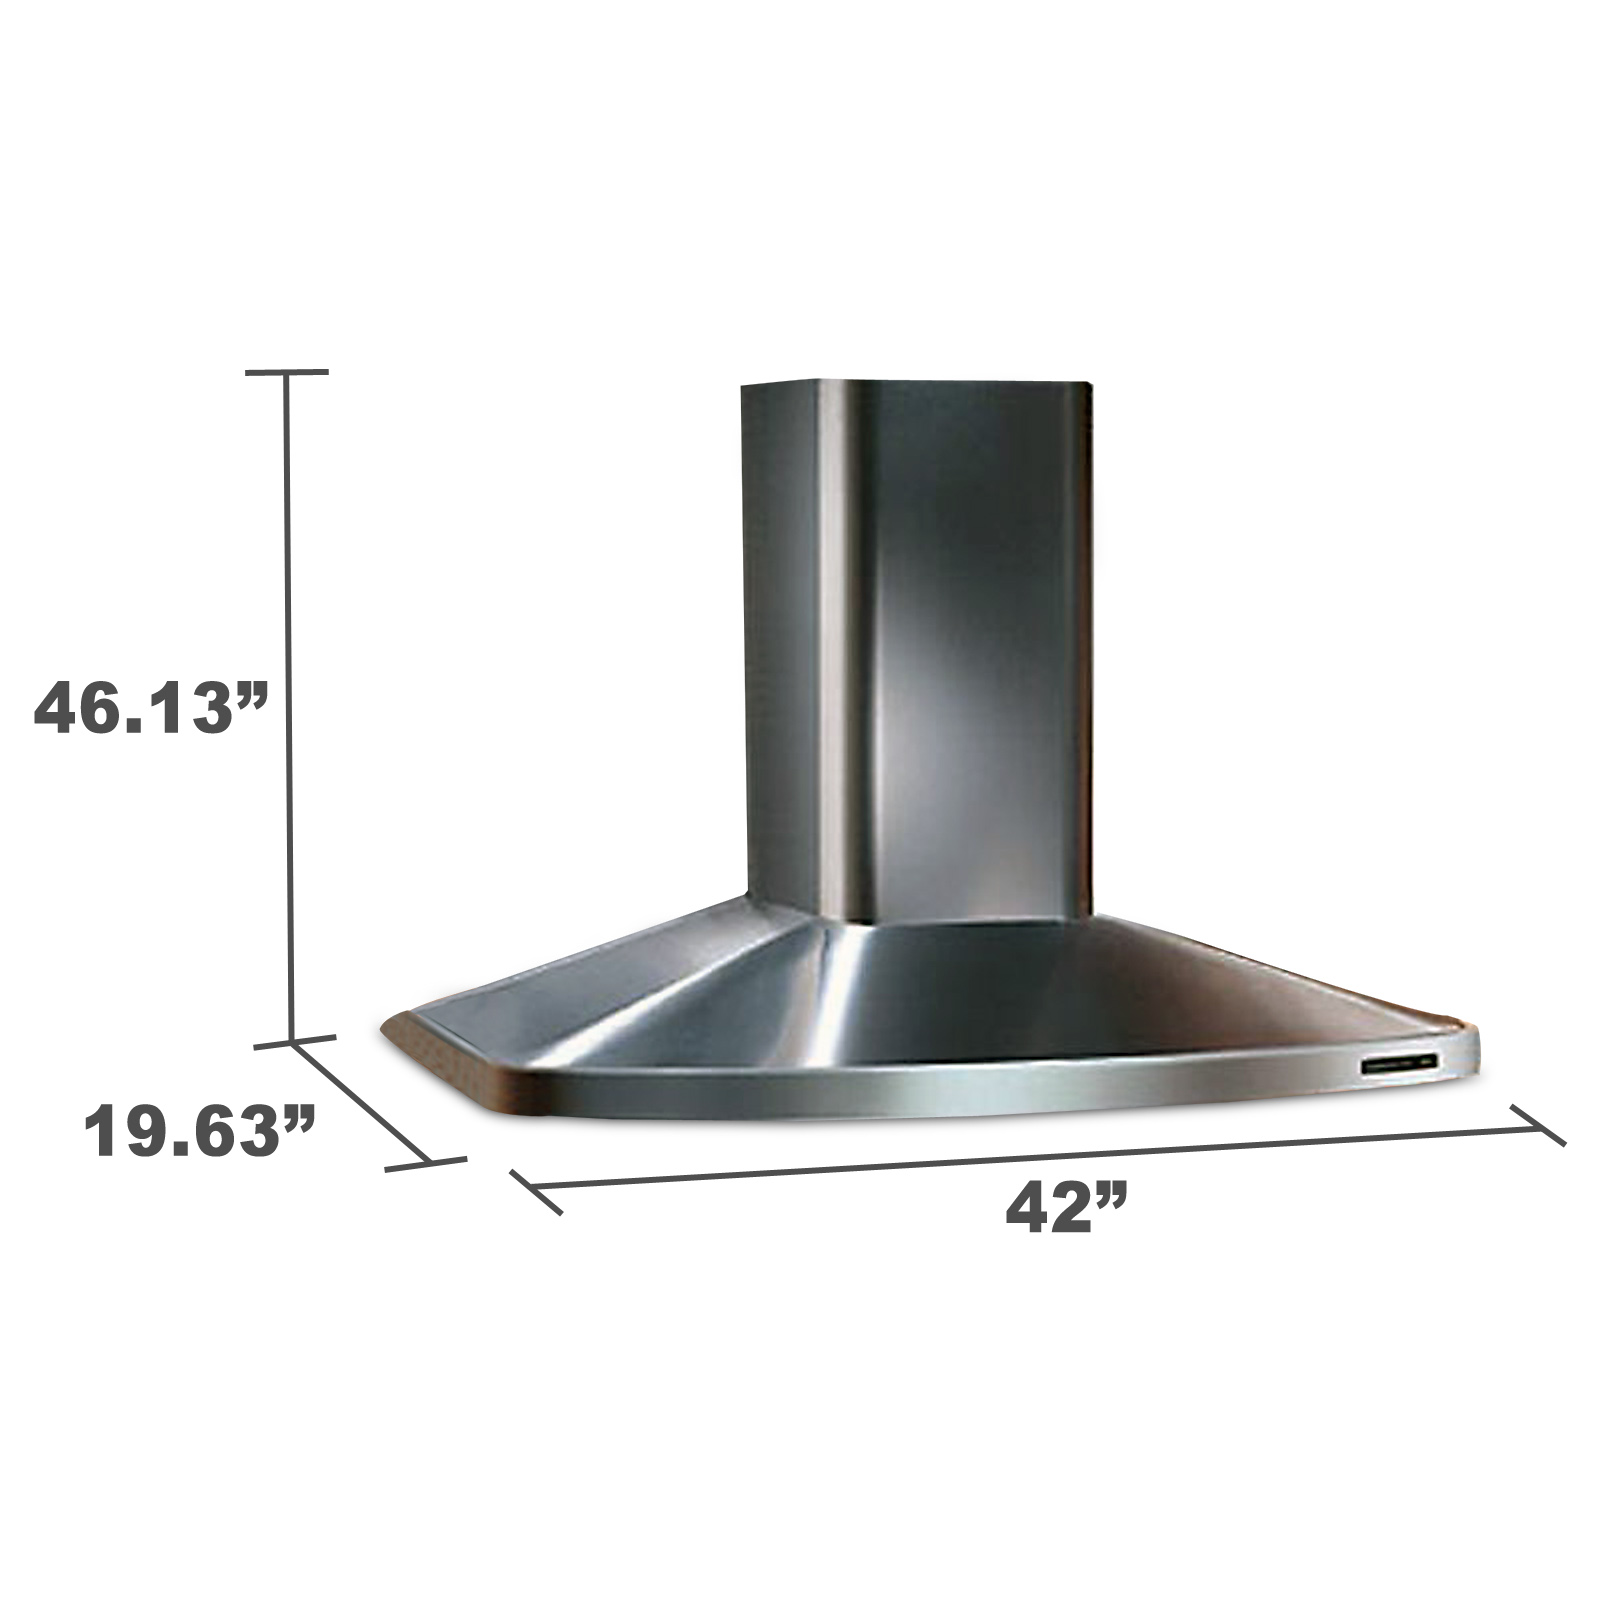 "Kenmore Elite 52423 42"" Italian-Design Wall-Mounted Range Hood"